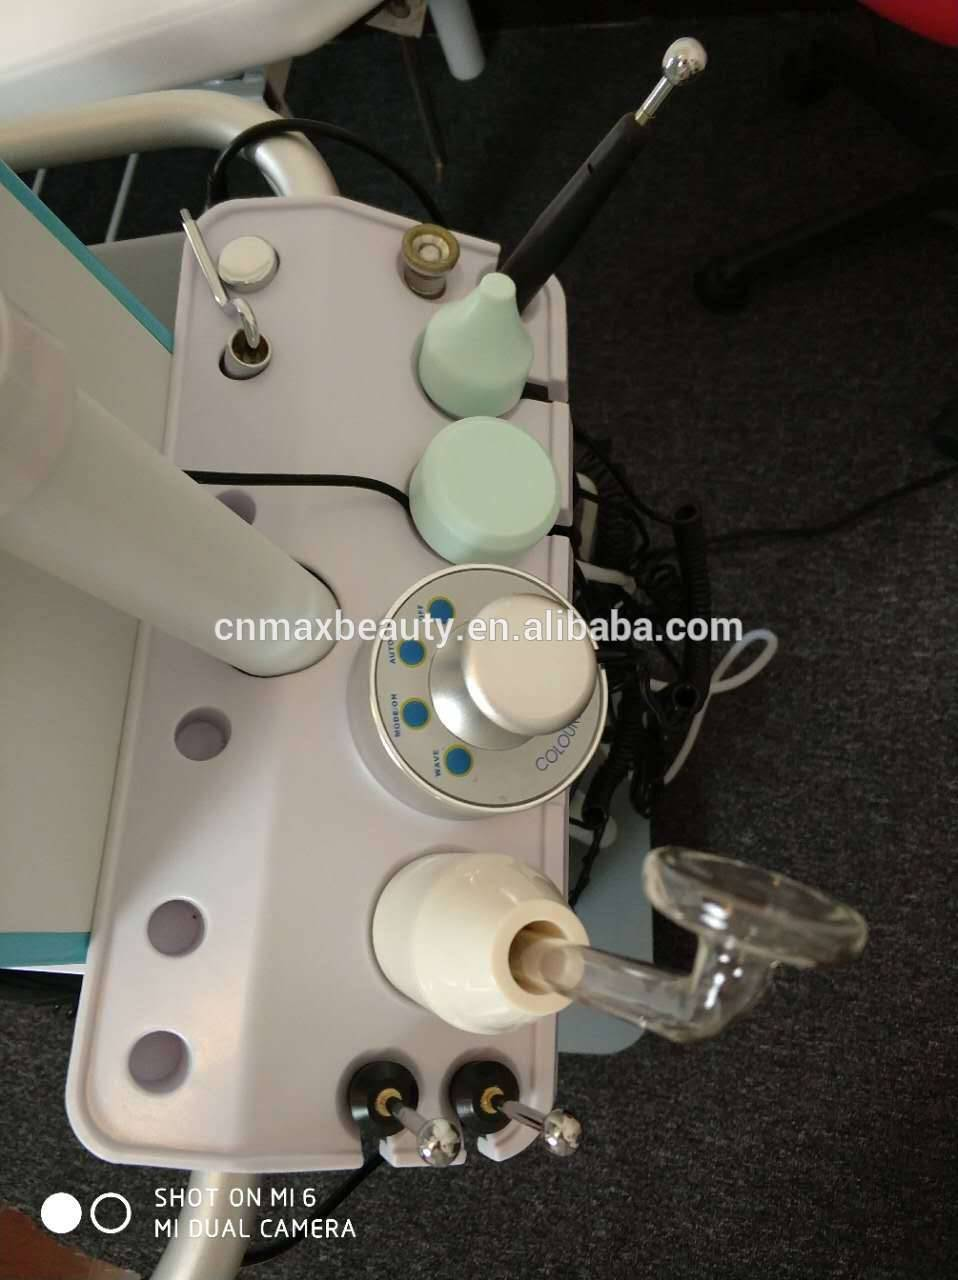 CE Certification and white color 19 in 1 facial machine Professional multifunctional beauty equipment